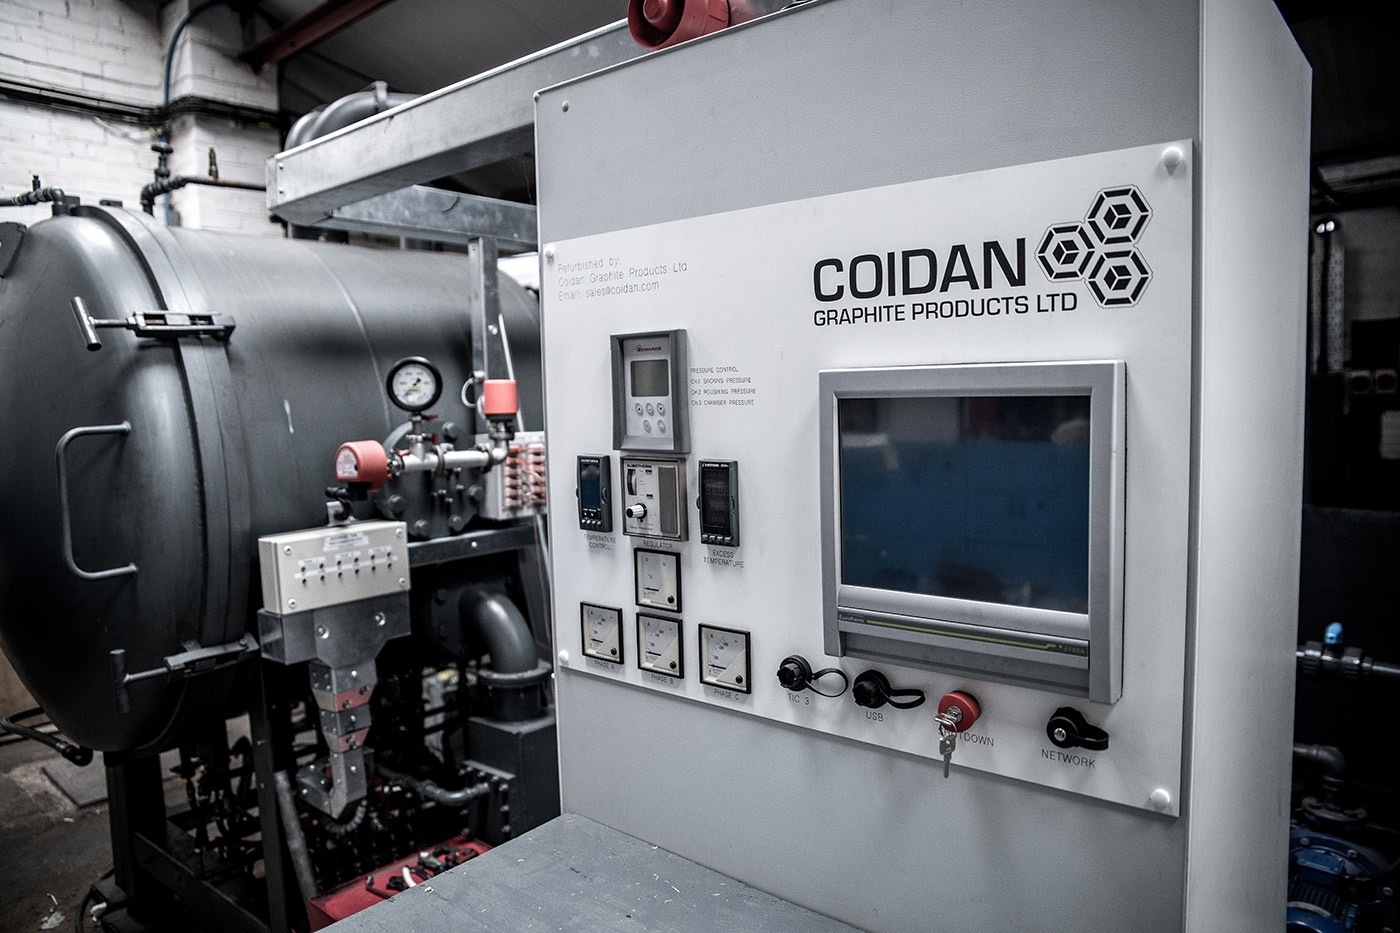 coidan graphite refurbished arc furnace